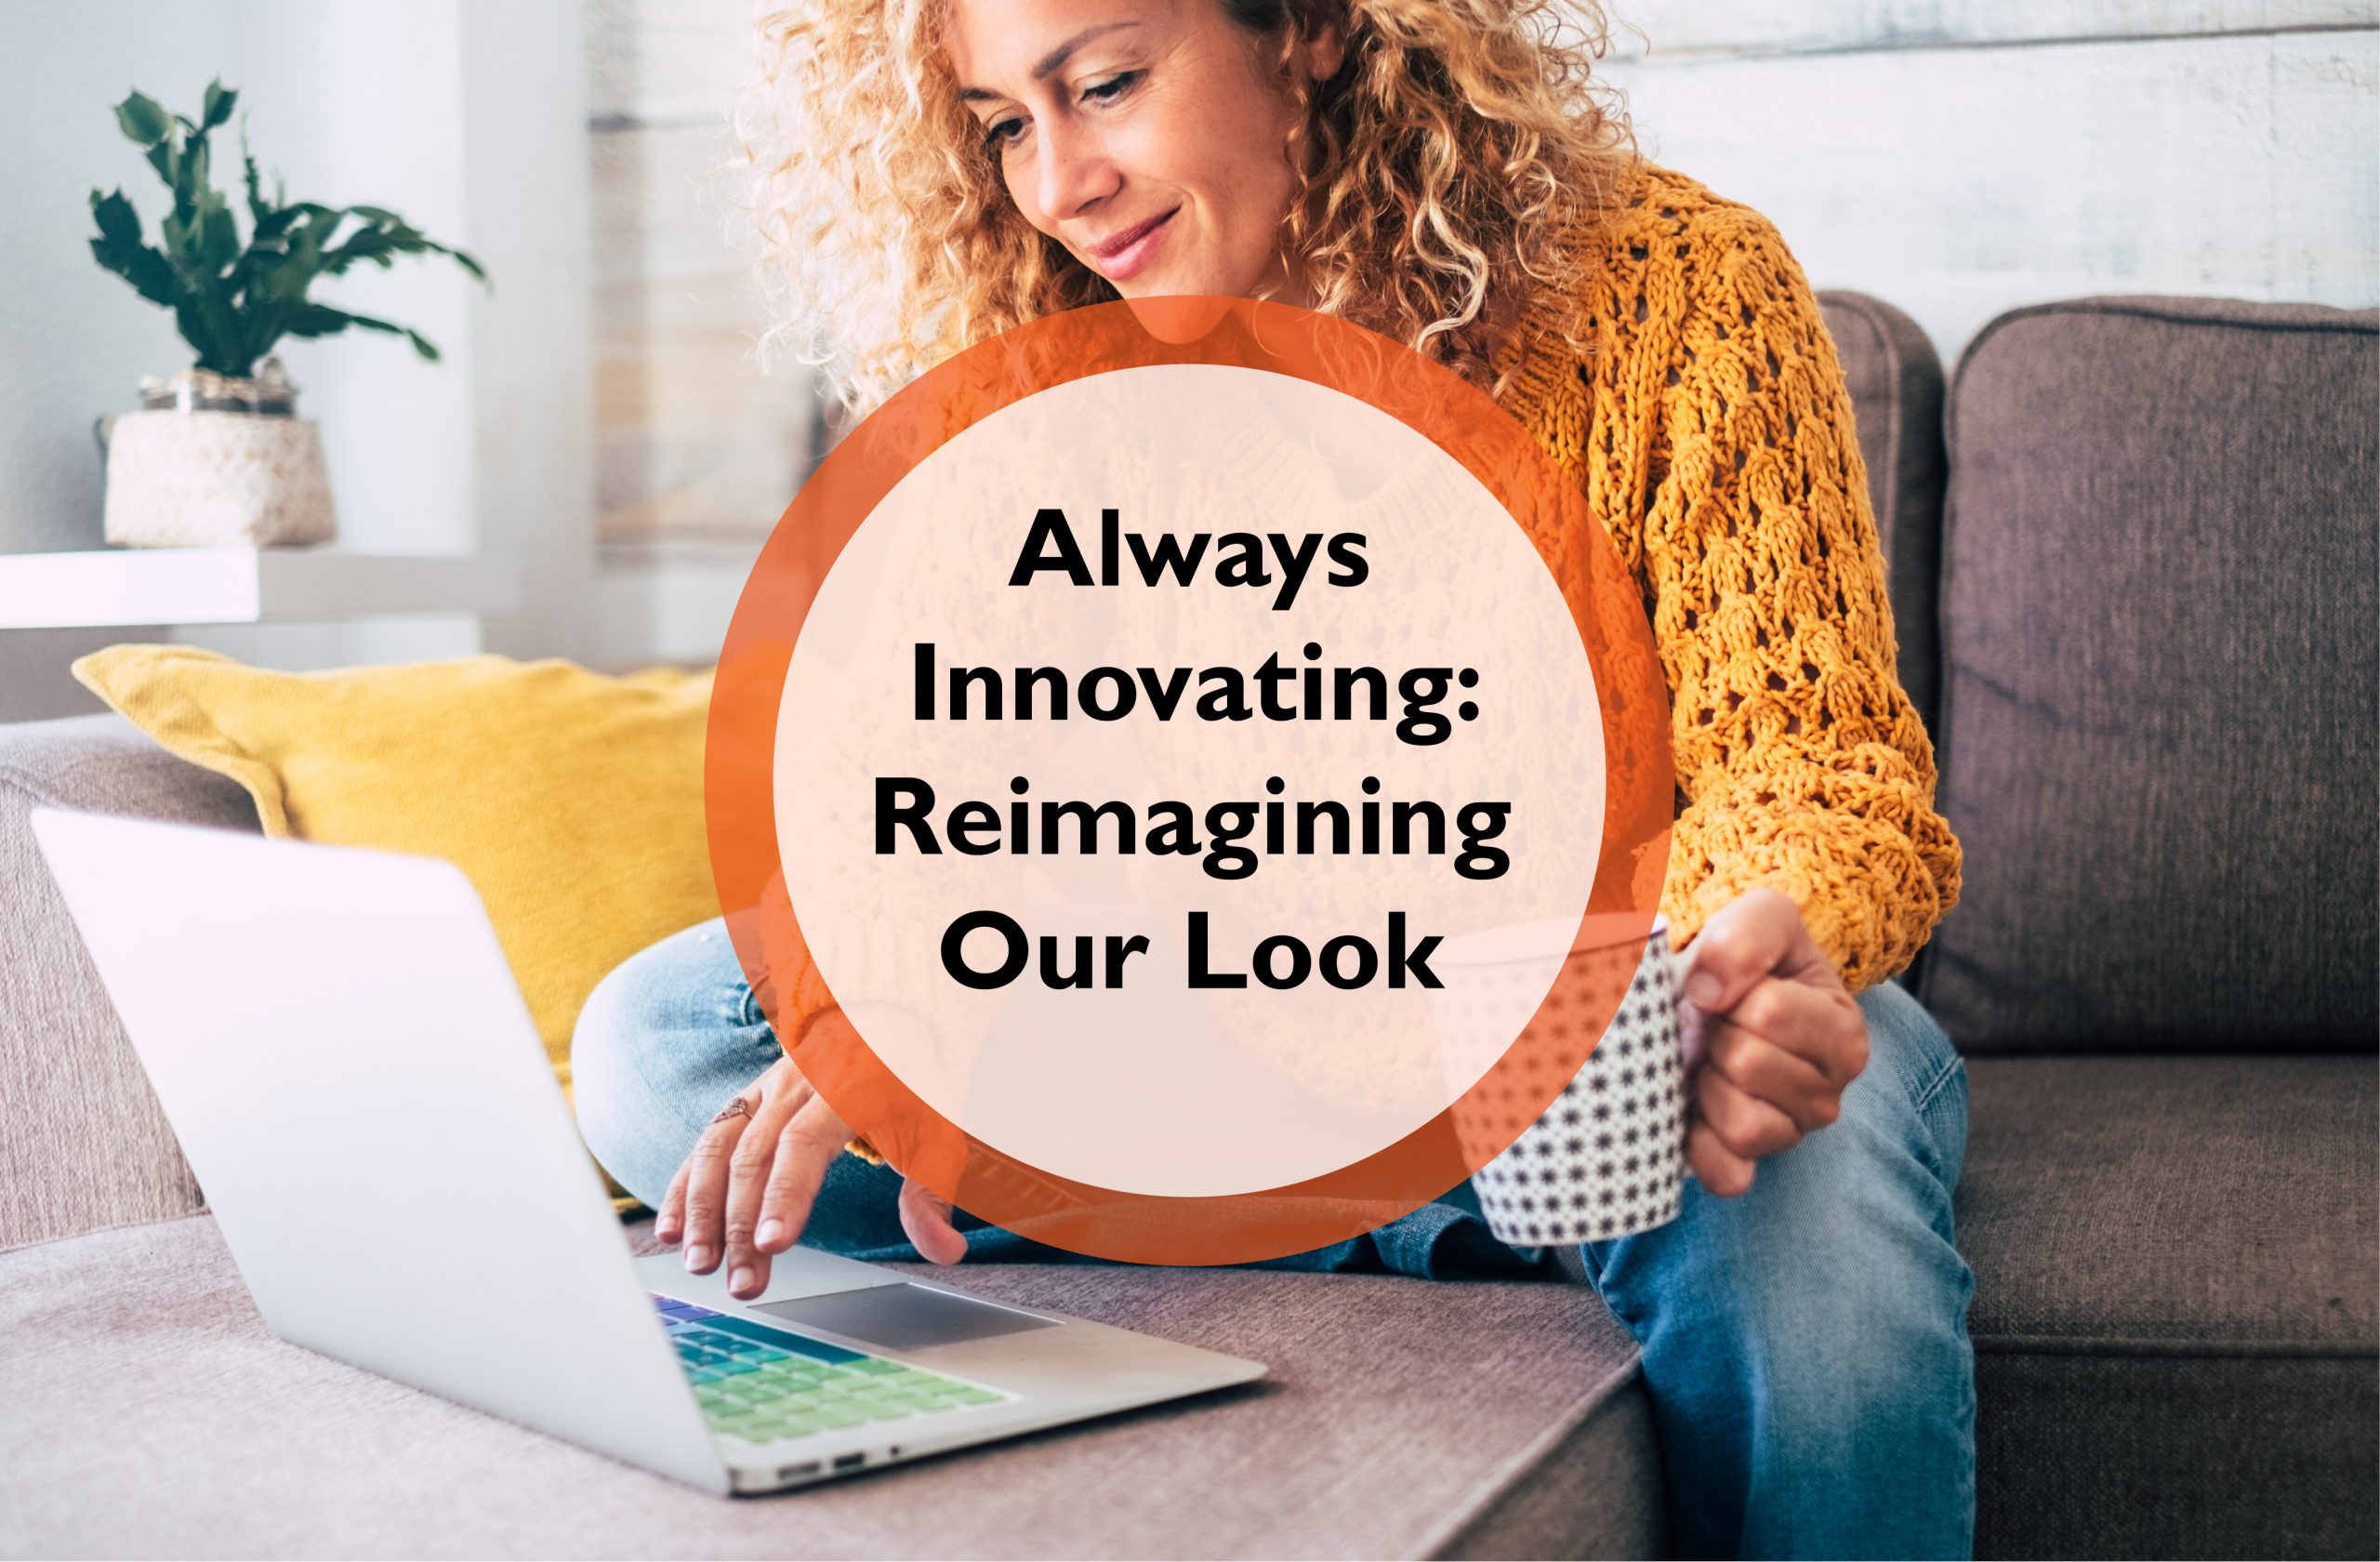 Always Innovating: Reimagining Our Look